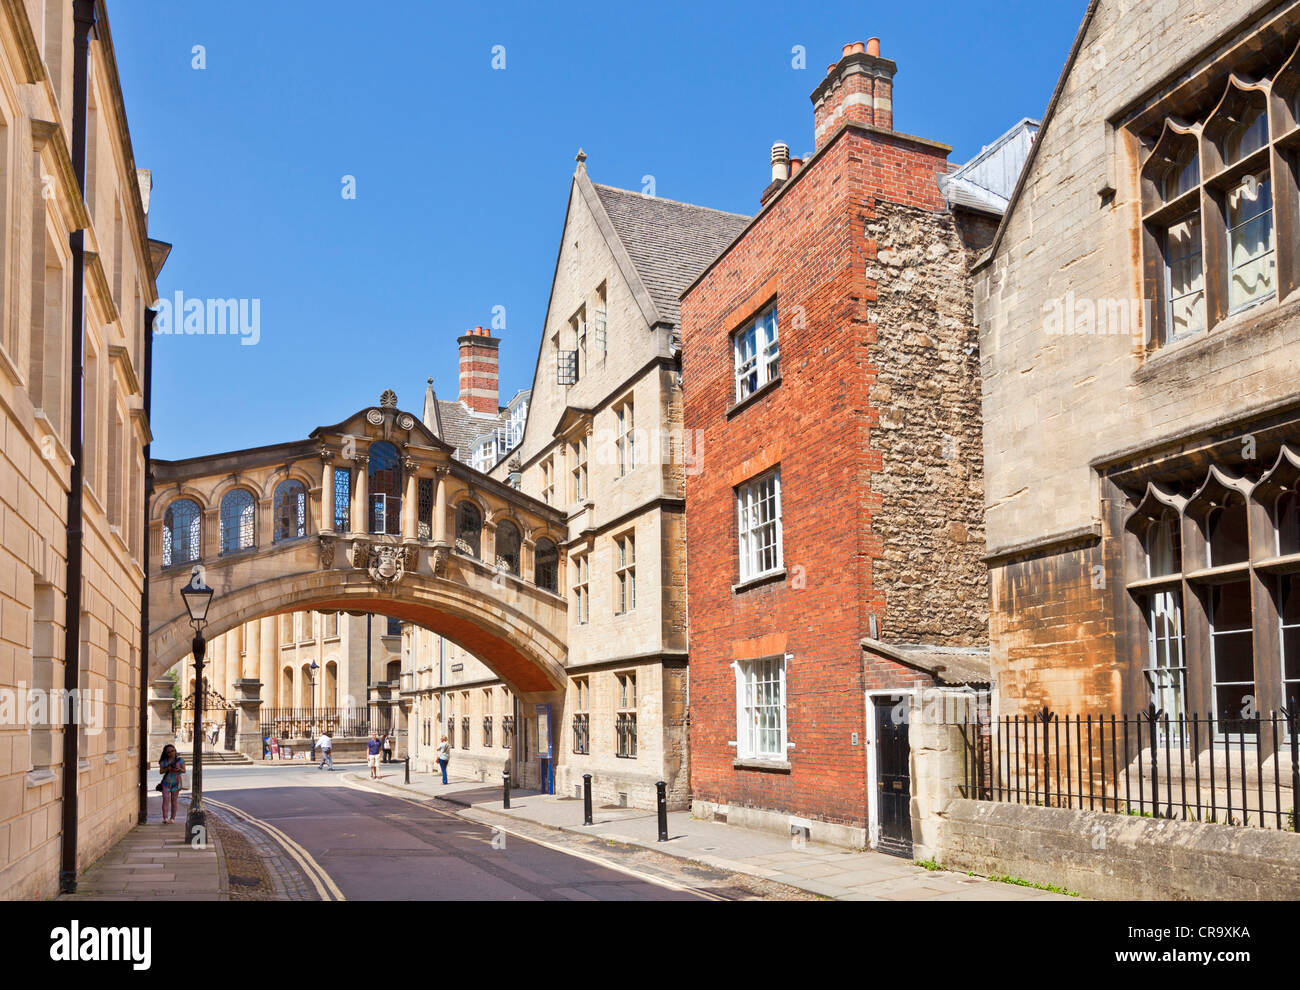 The Bridge of Sighs or the Hertford Bridge New College Lane Oxford Oxfordshire England UK GB EU Europe - Stock Image